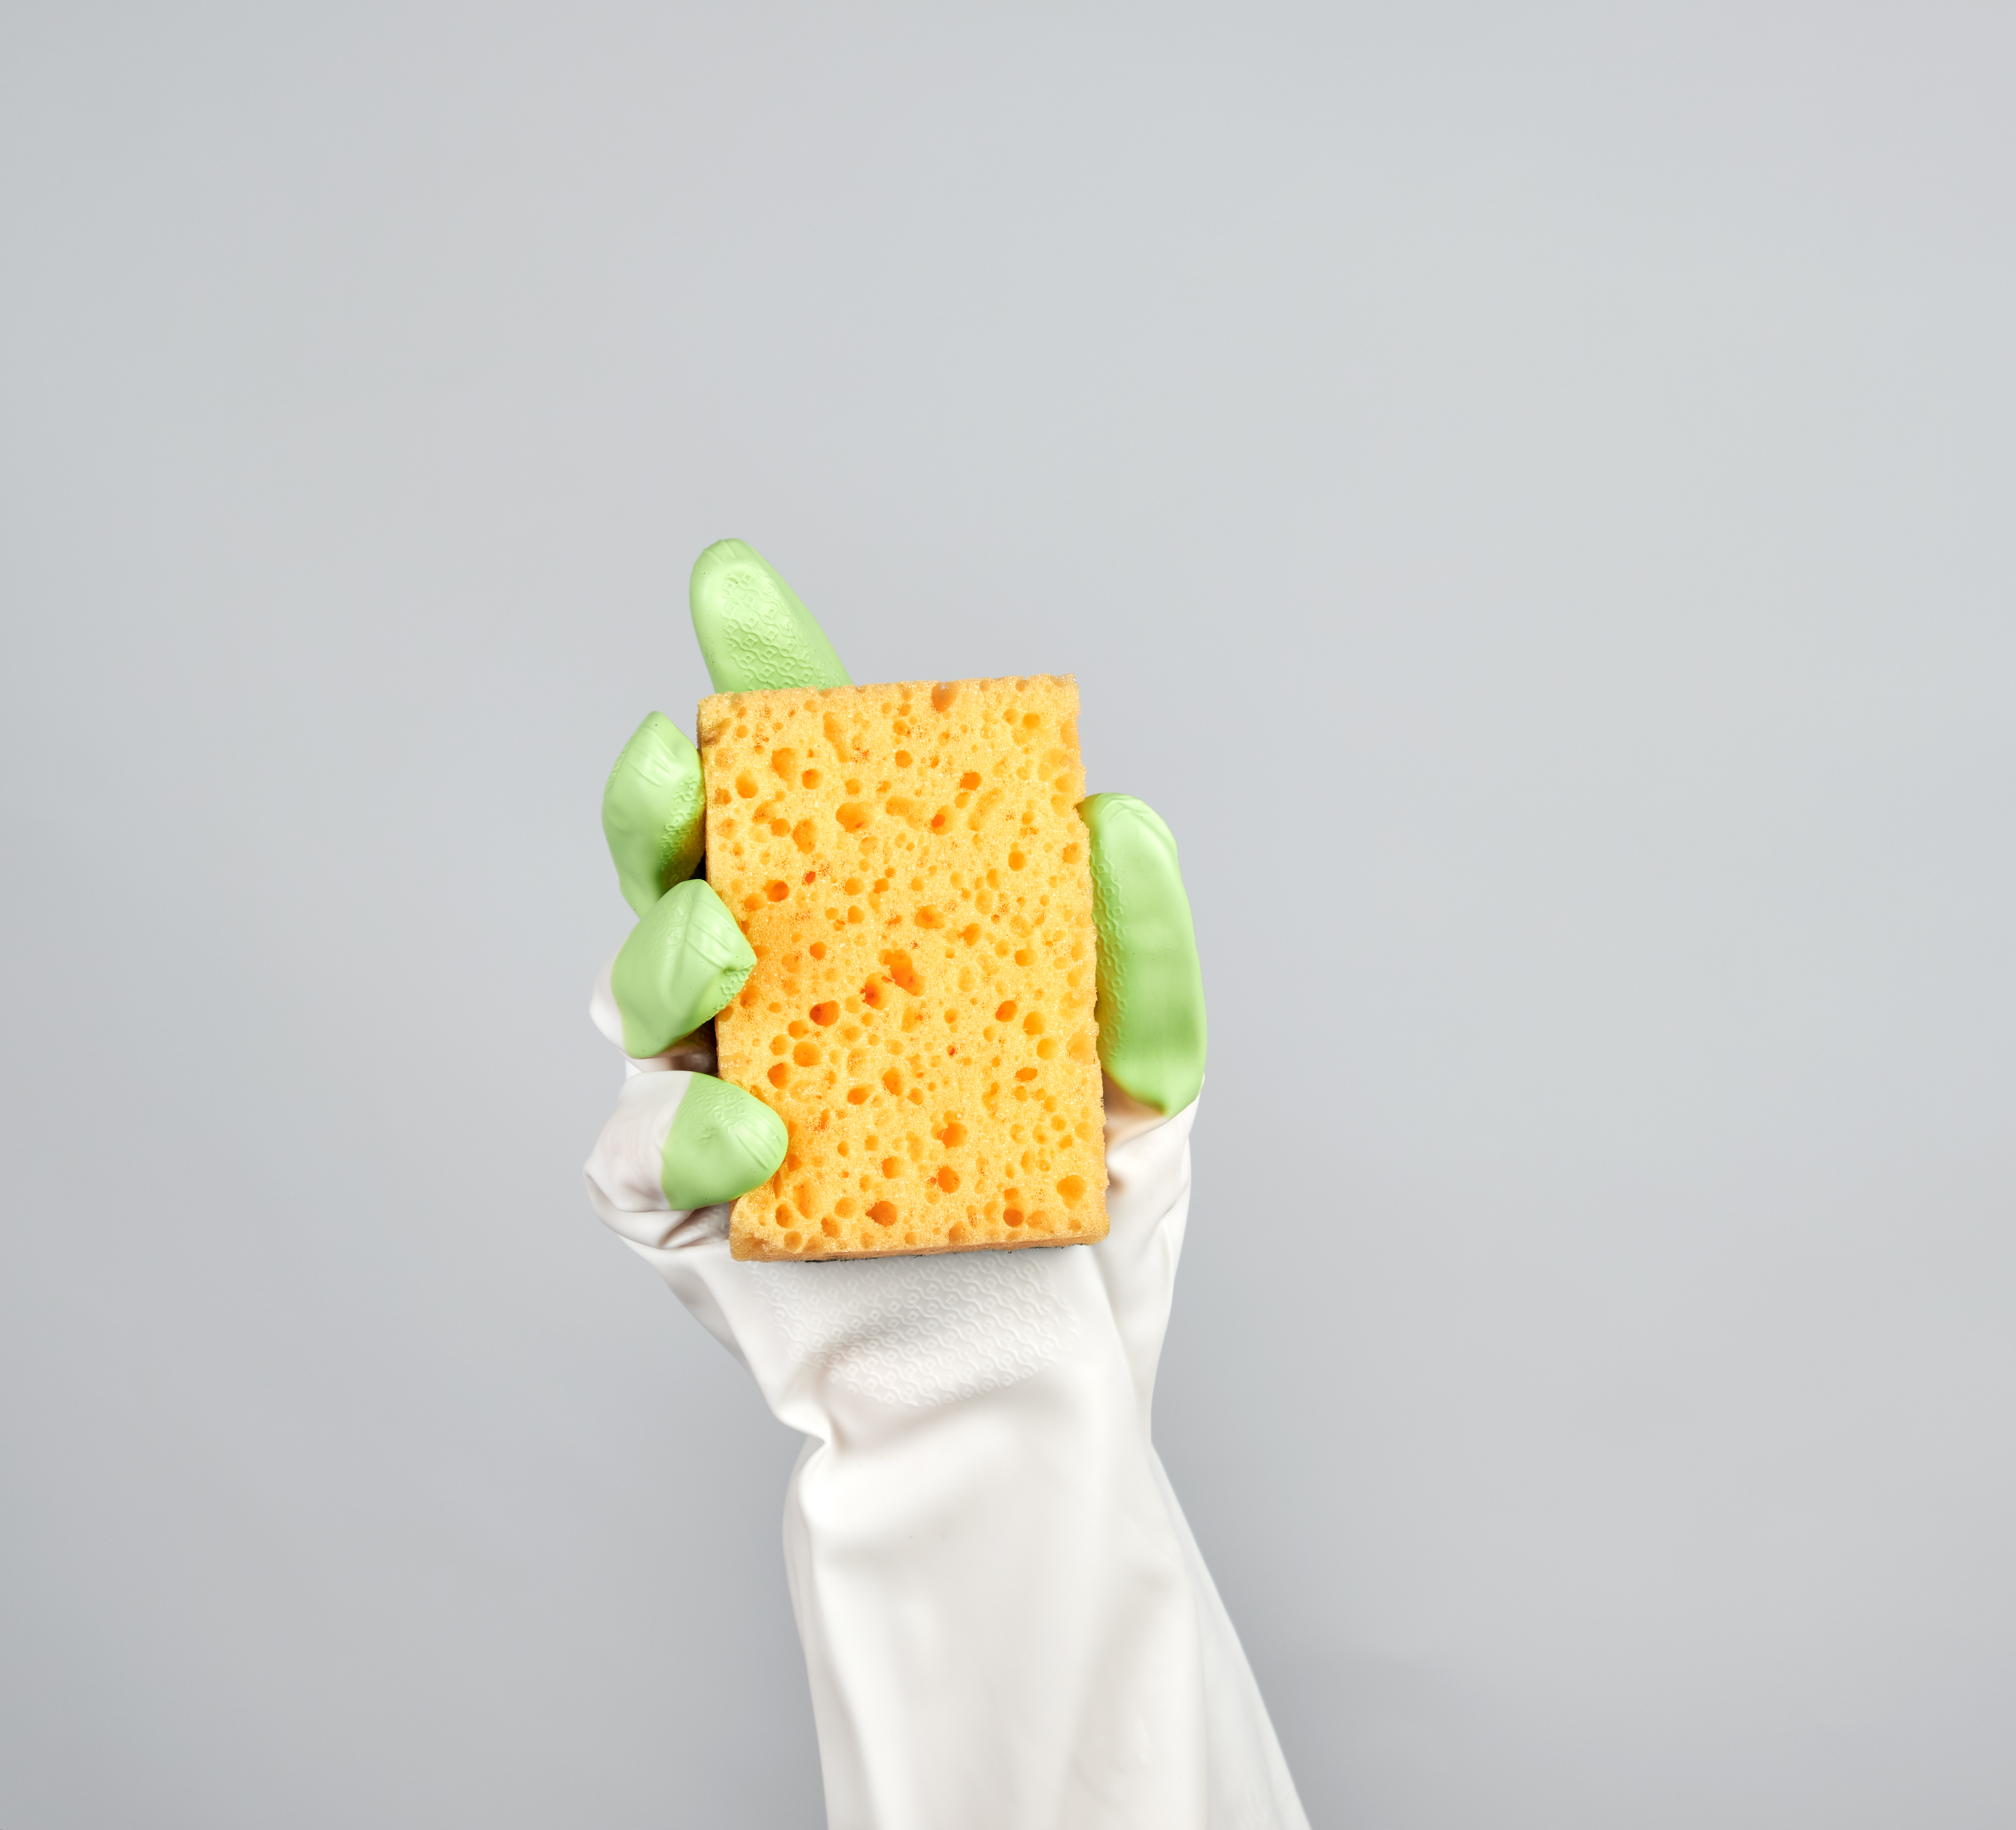 Canva - Gloved Hand Holding a Yellow Kitchen Sponge